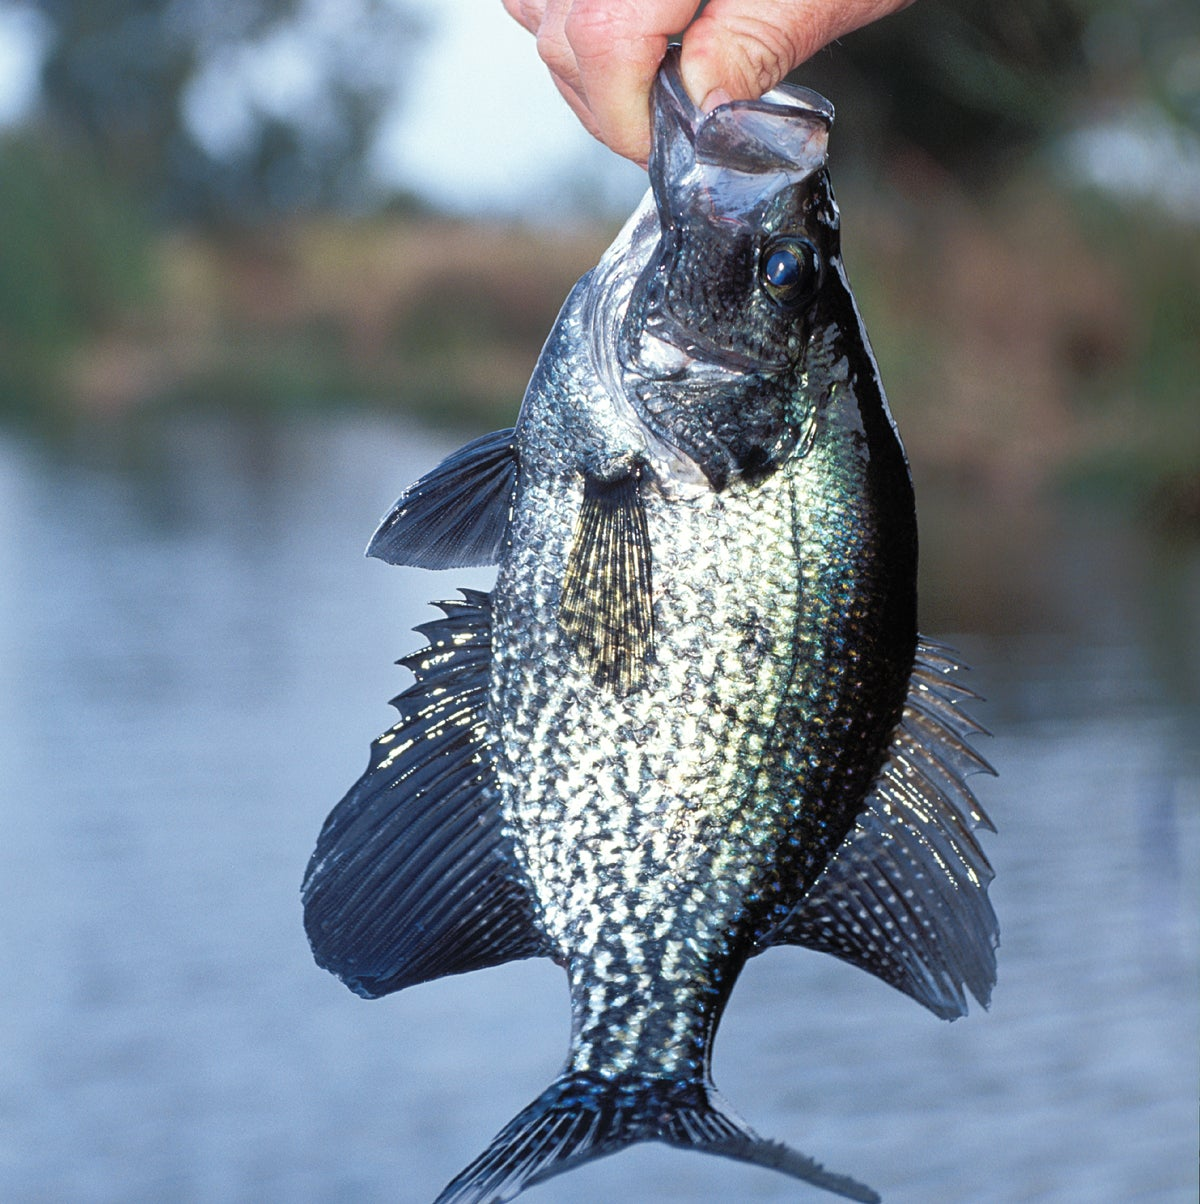 How to Sneak Attack Crappies and Catch a Limit